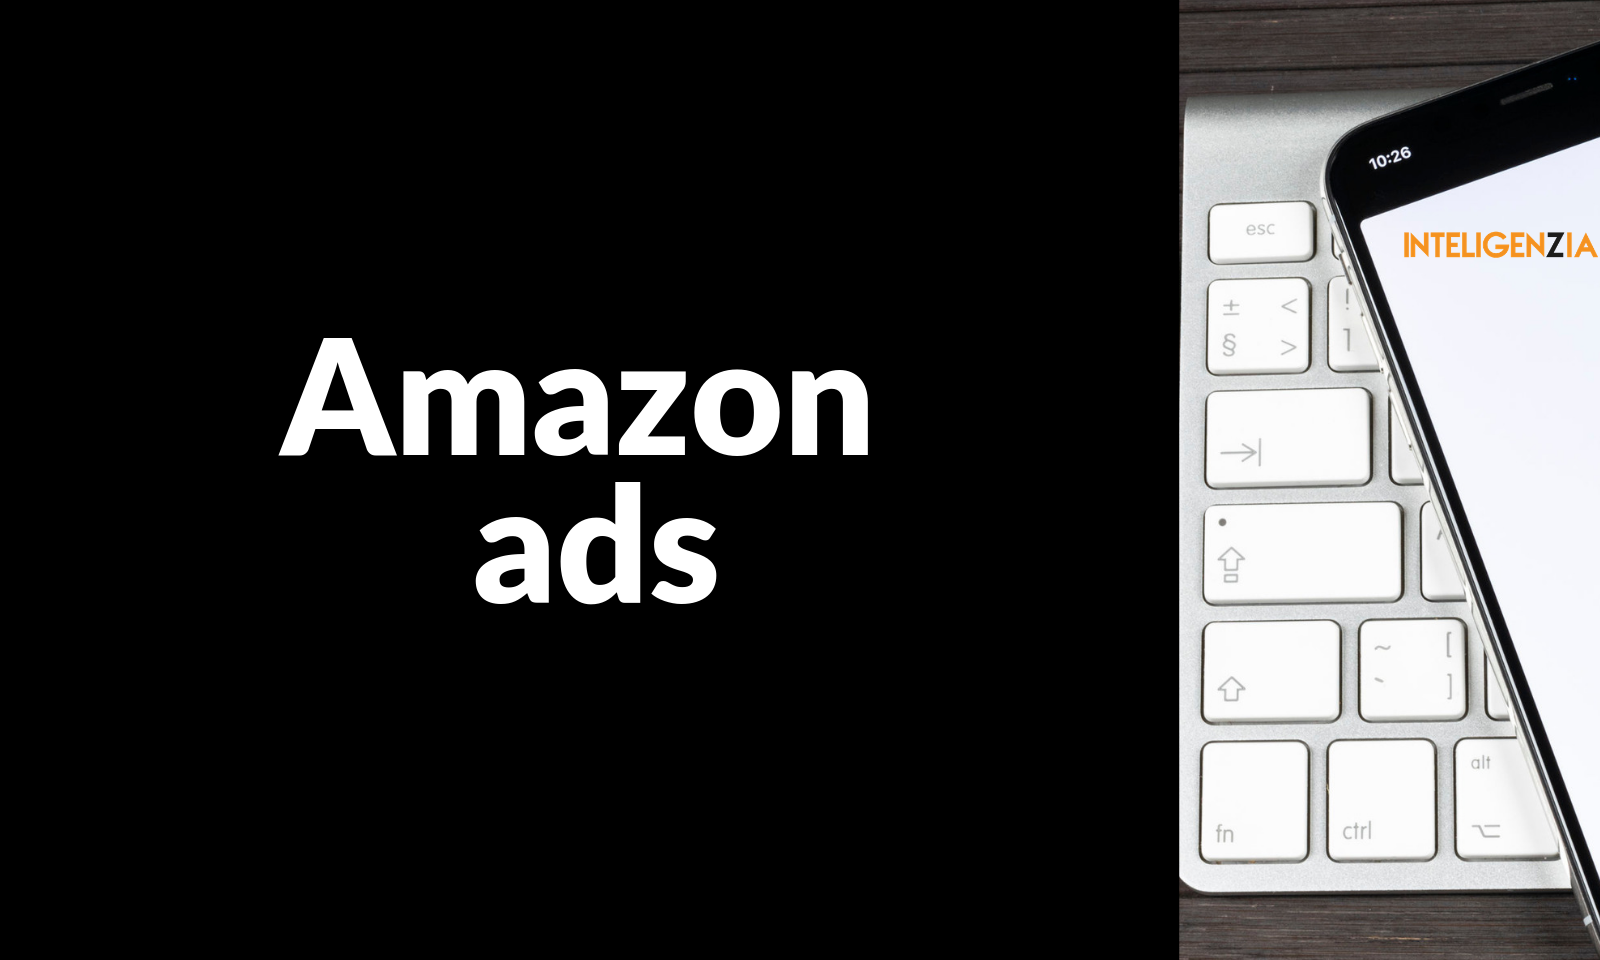 Amazon_Inteligenzia_Portada